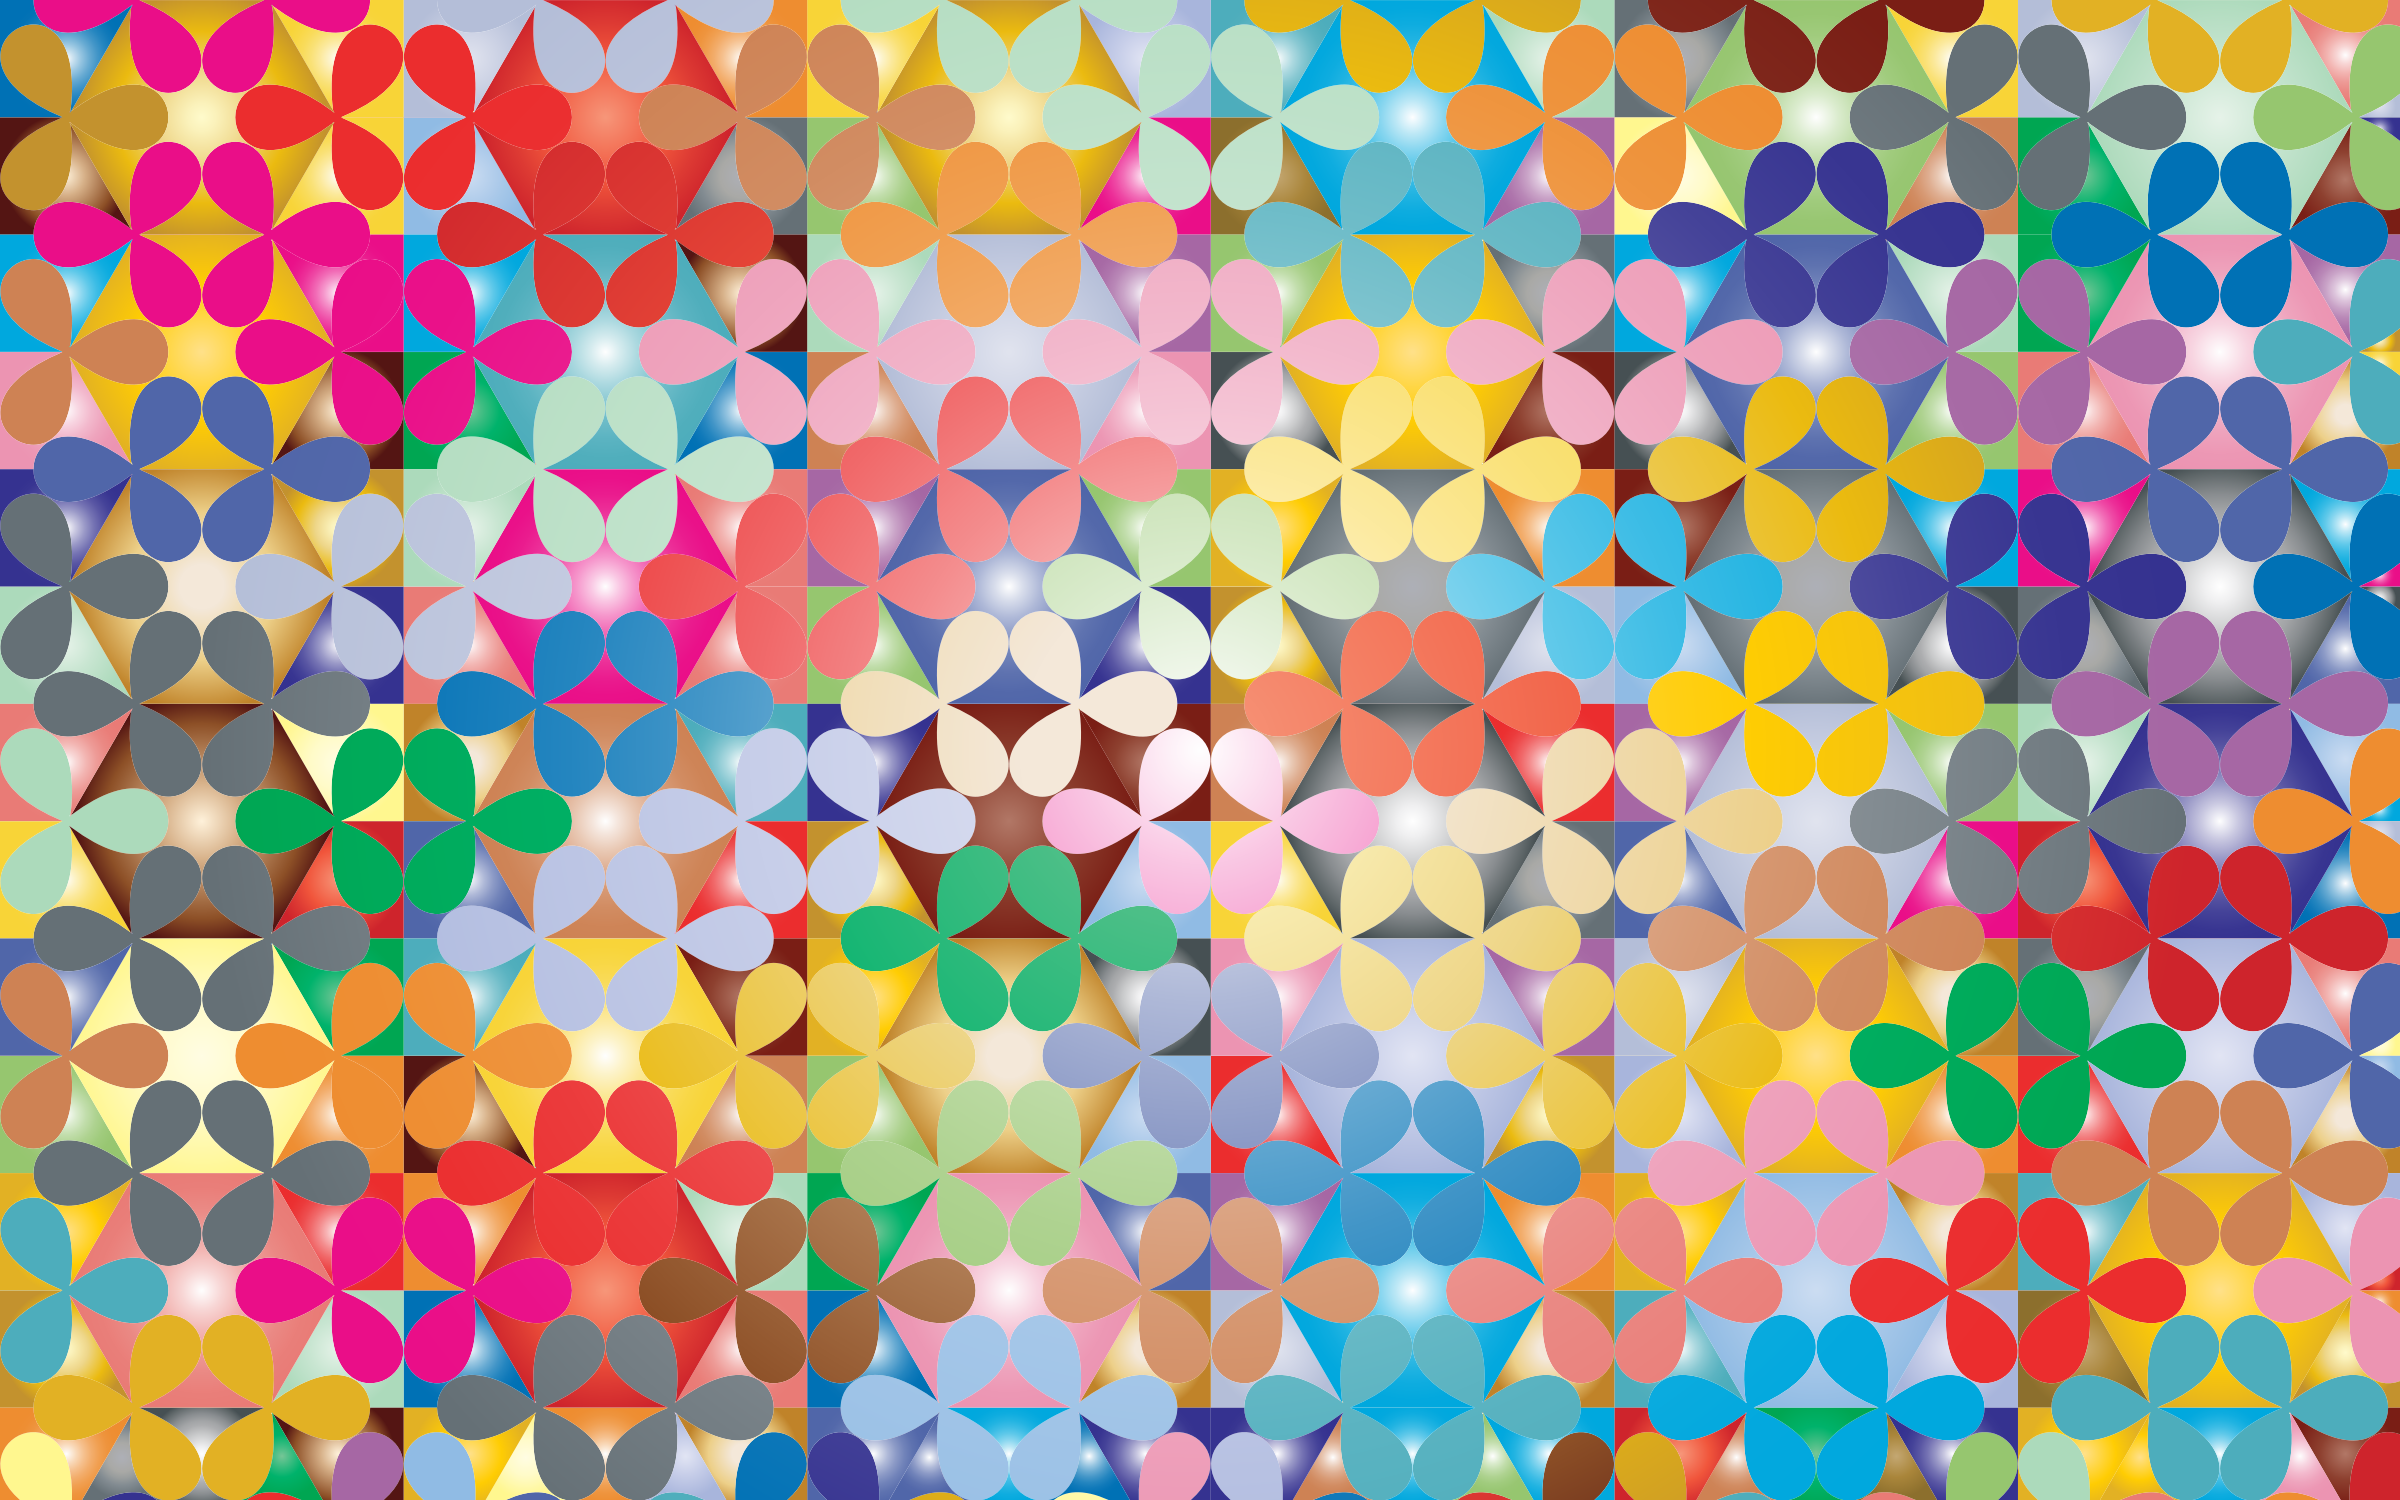 Prismatic Floral Pattern 2 Variation 2 by GDJ